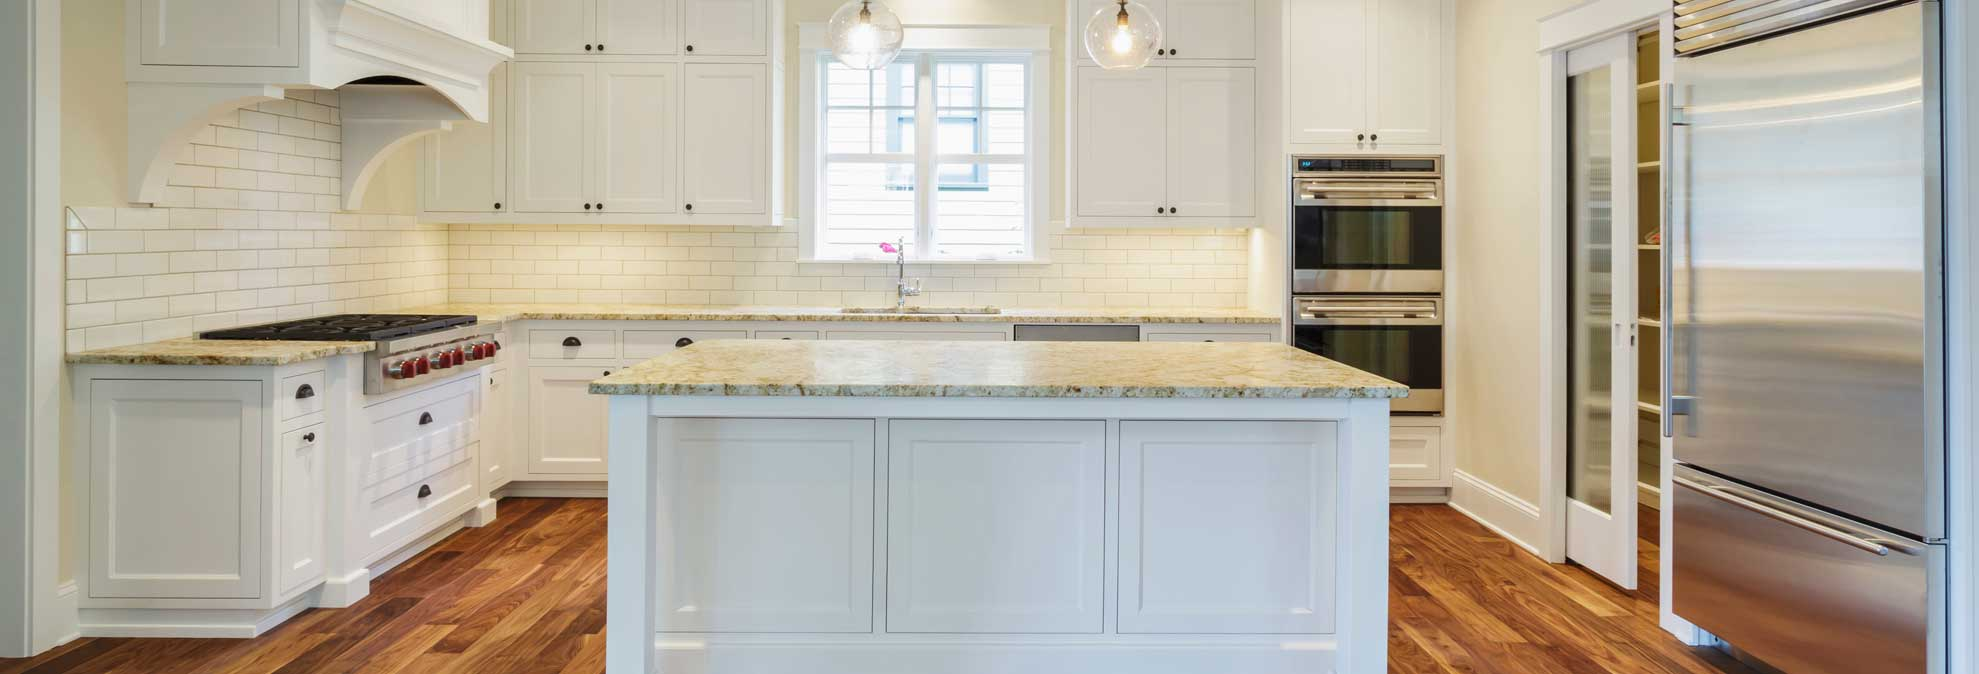 Kitchen Renovation Kitchen Remodel Mistakes That Will Bust Your Budget Consumer Reports